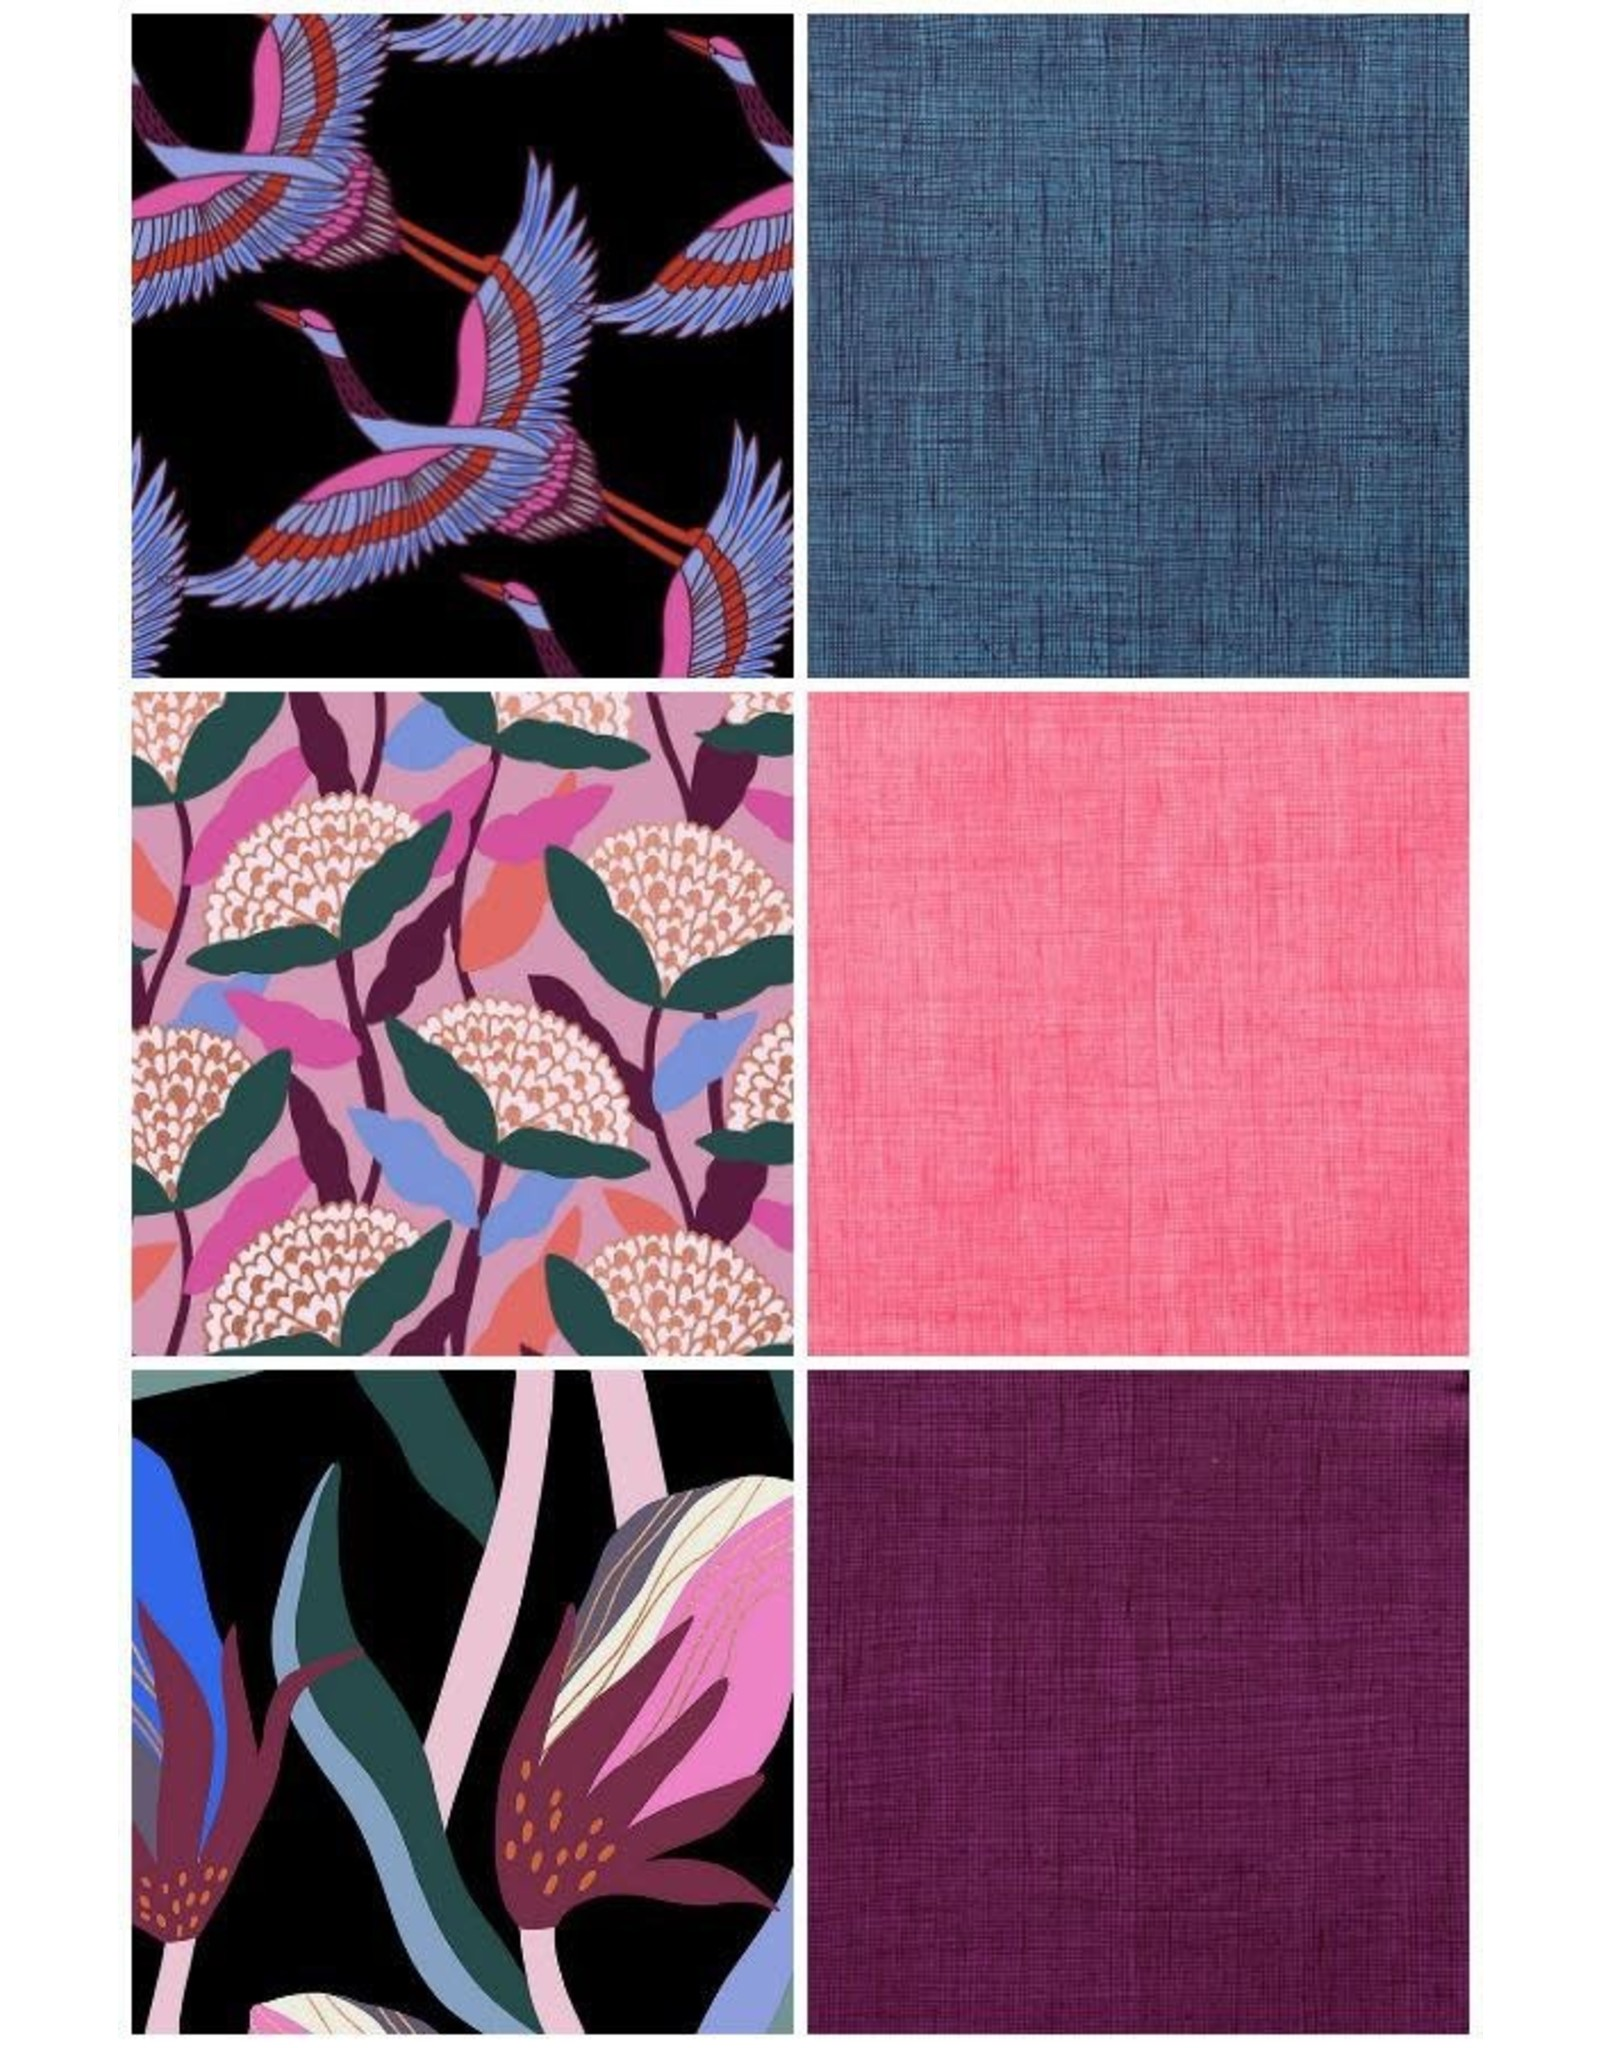 Picking Daisies Airflow from Ruby Star Society, Fat Quarter Bundle containing 6 pcs.